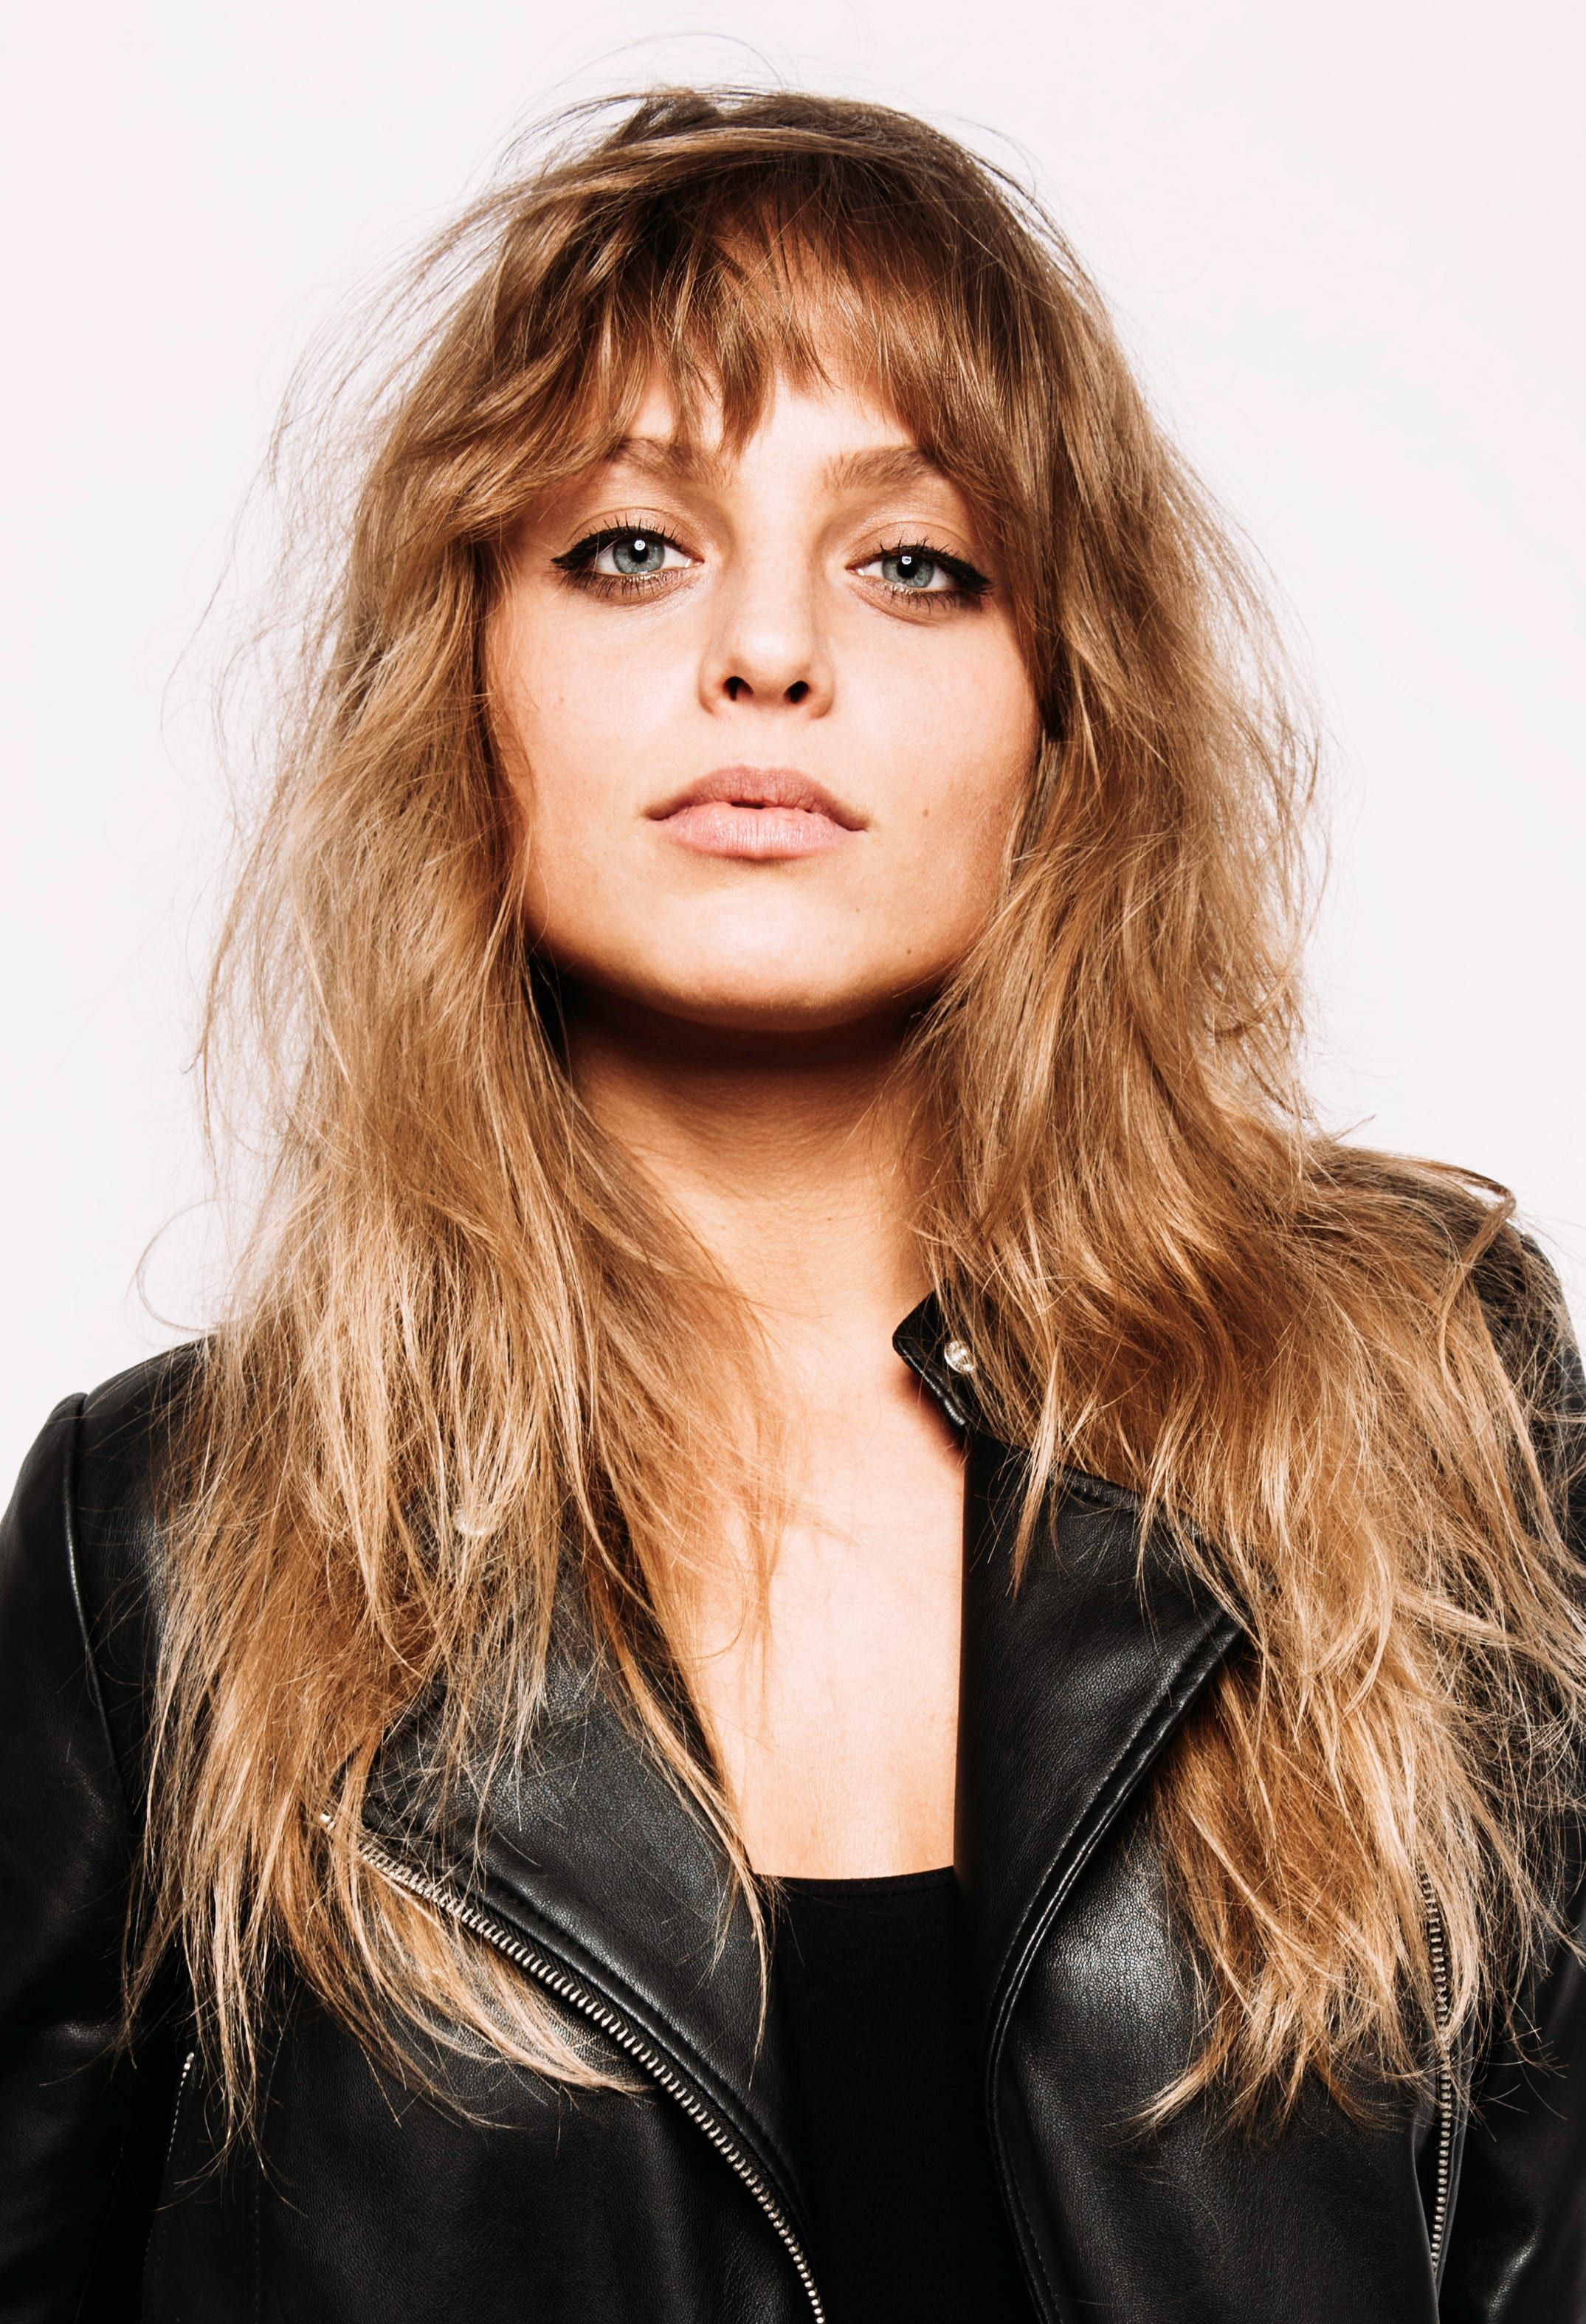 Messy Choppy Bangs with Ombre - Bangs pair perfectly with ombre on long  locks. Balance out your choppy bangs with loos…   Choppy bangs, Messy bangs,  Womens haircuts